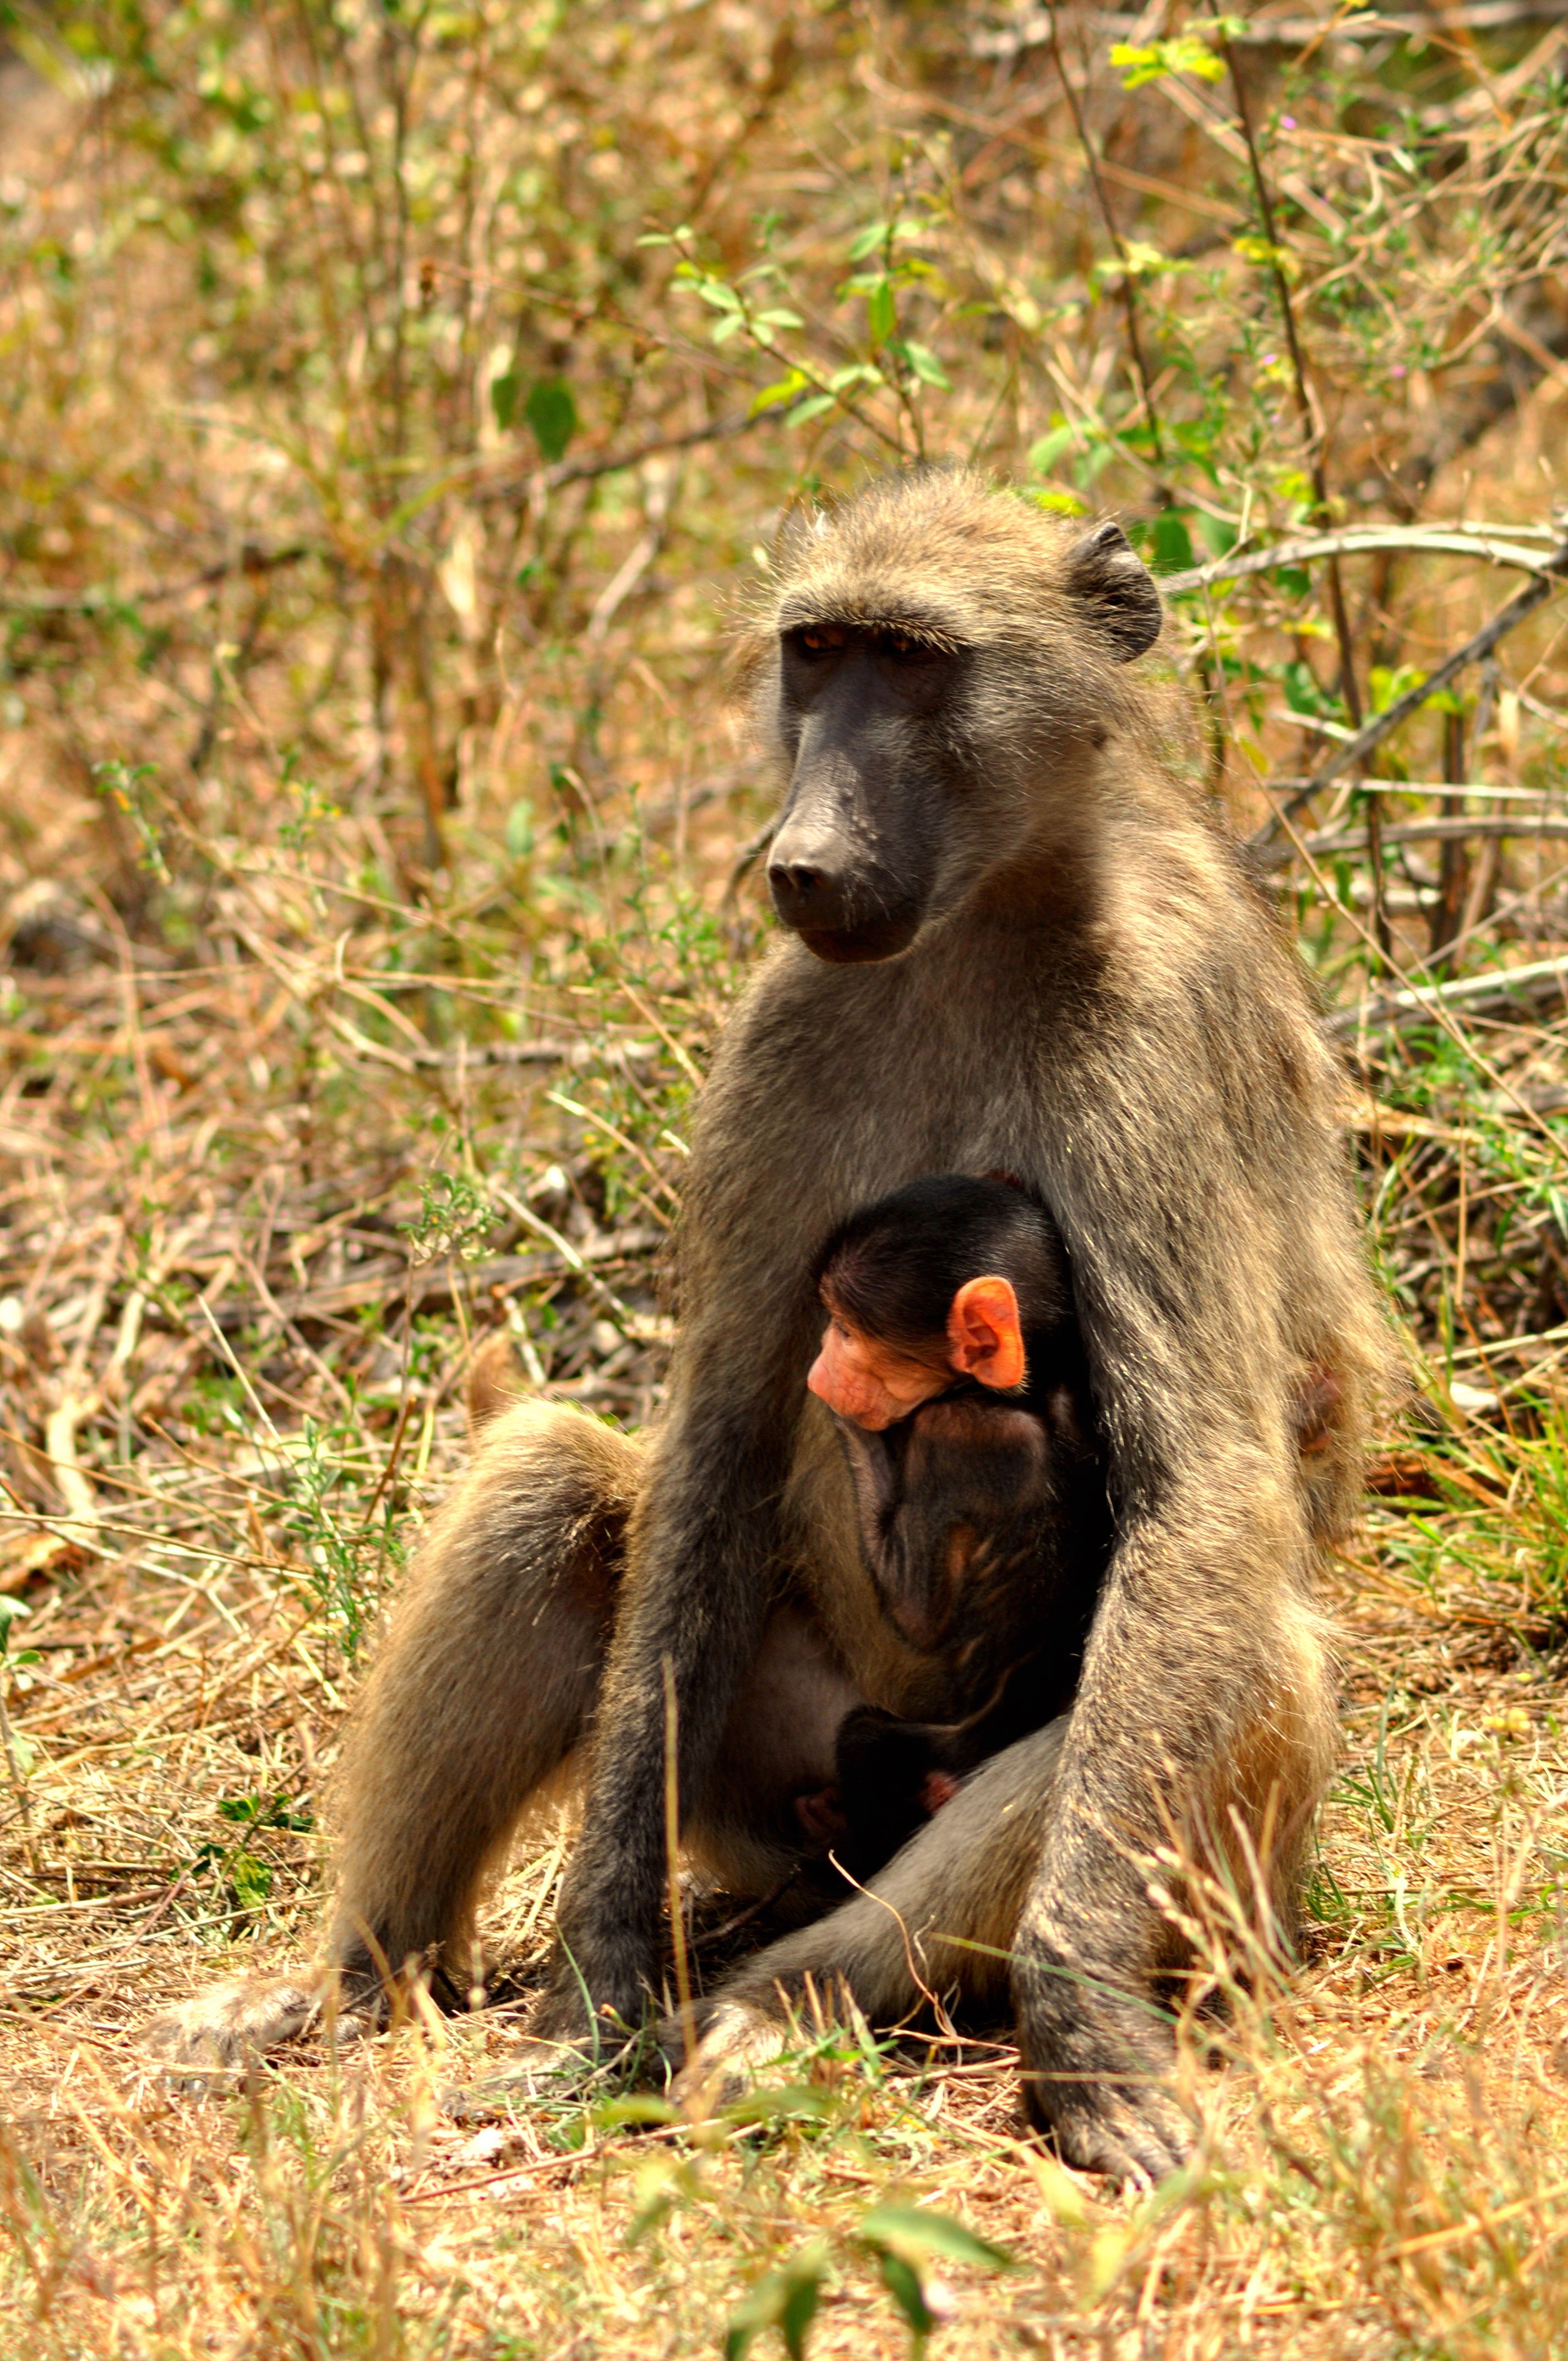 Two brown-and-black primates photo